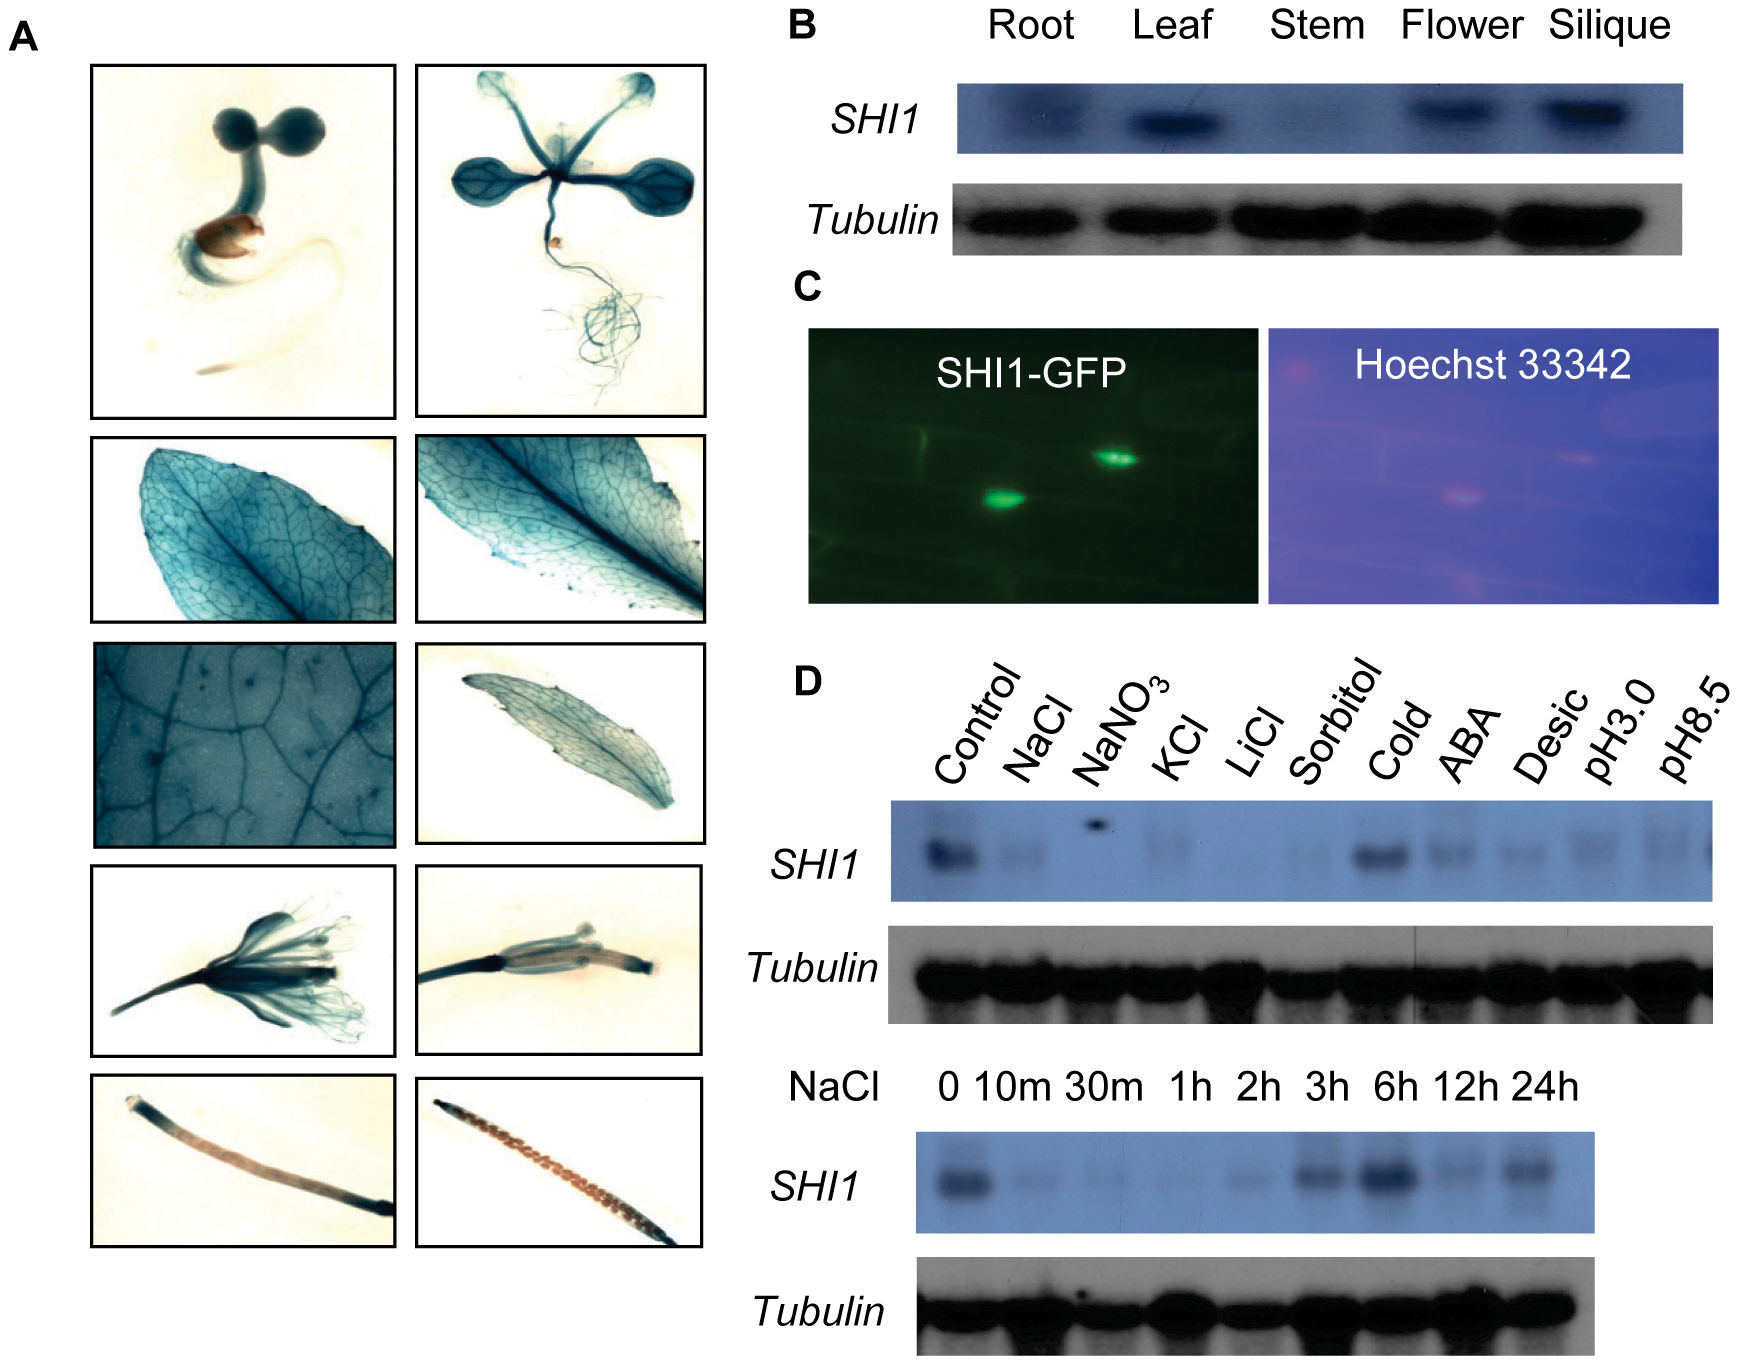 Gene expression and subcellular localization of the SHI1.